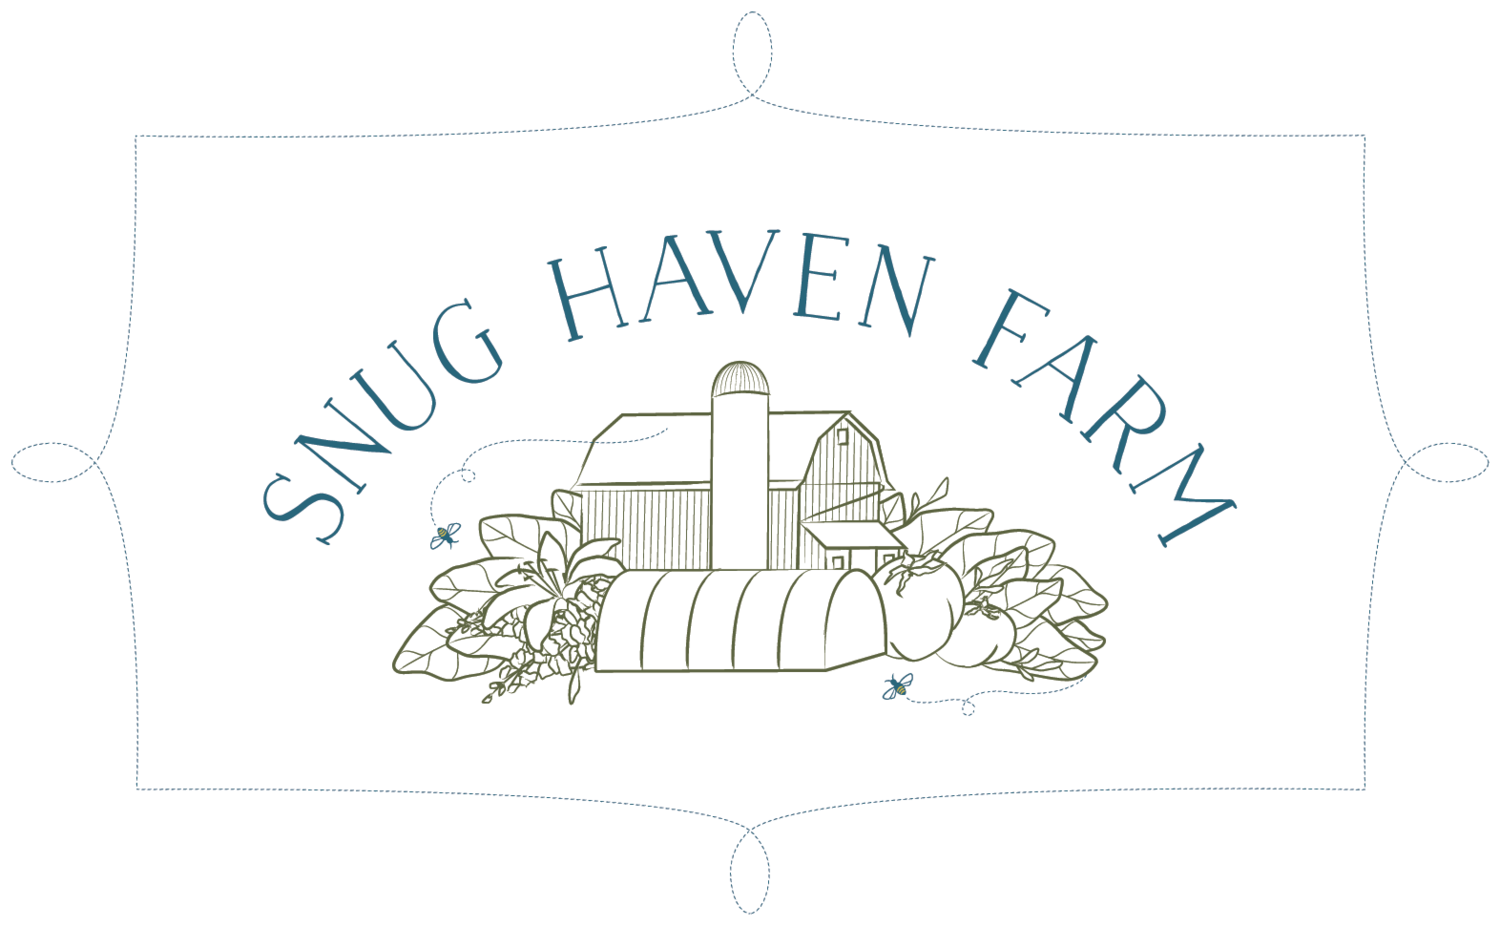 Snug Haven Farm